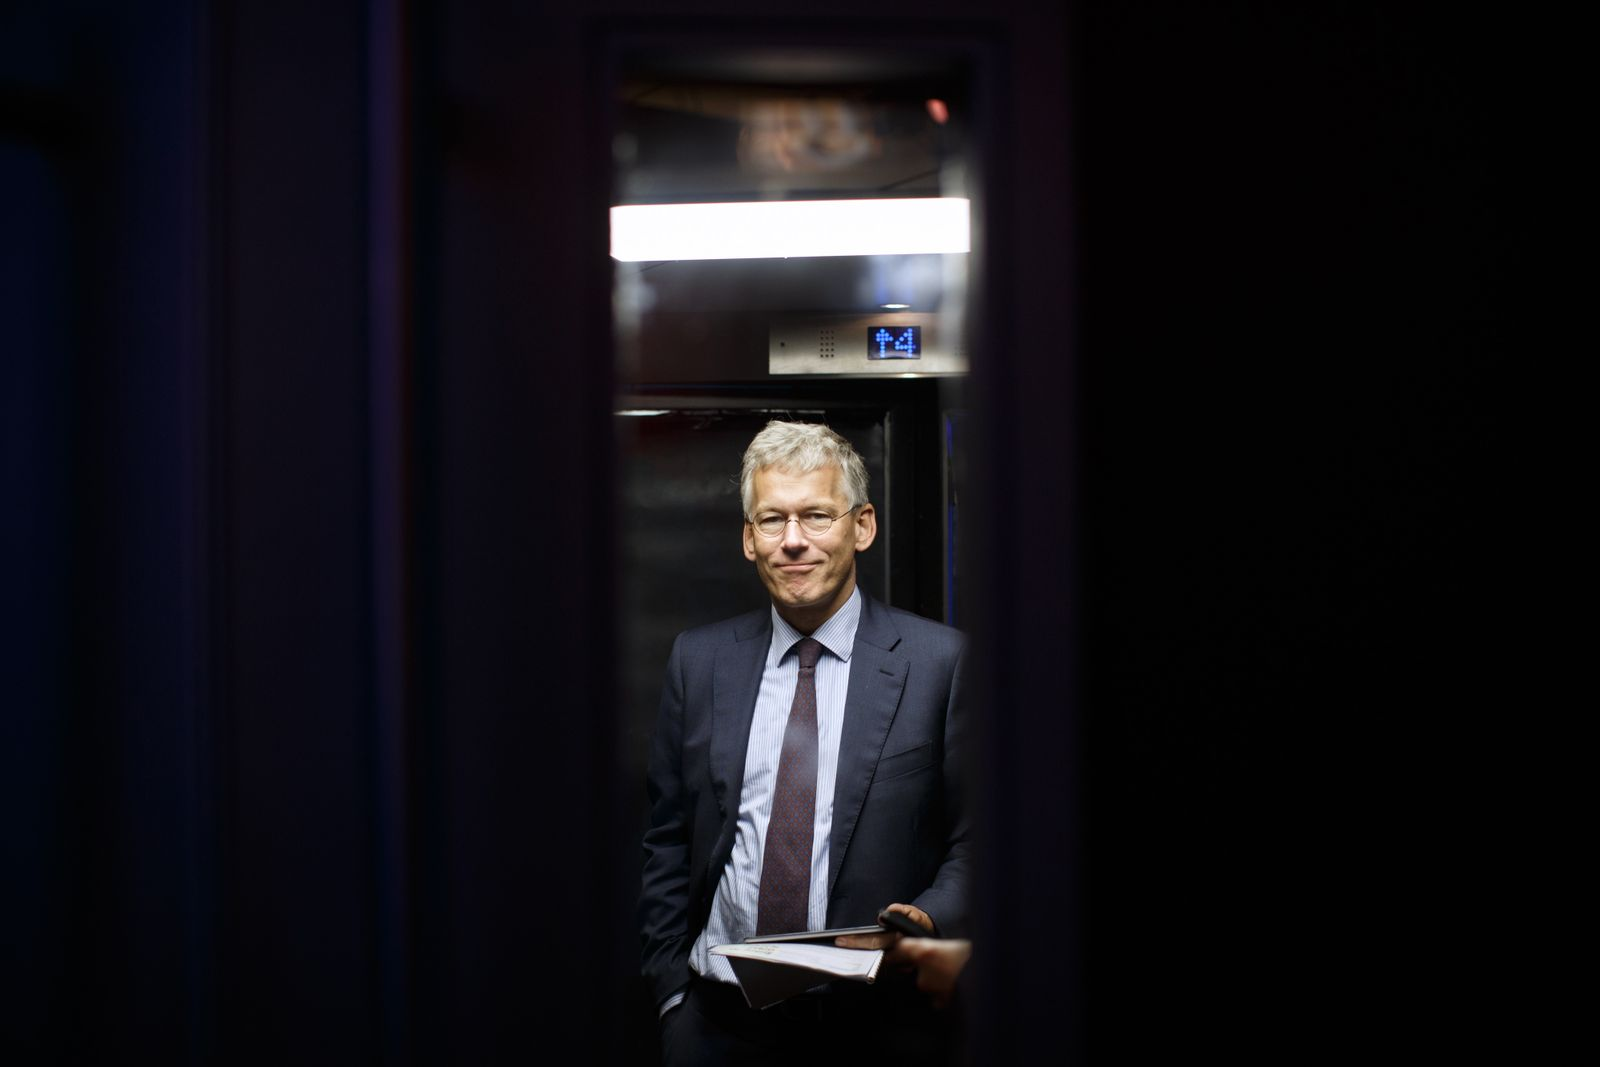 Royal Philips NV Chief Executive Officer Frans Van Houten Speaks At Innovation Day